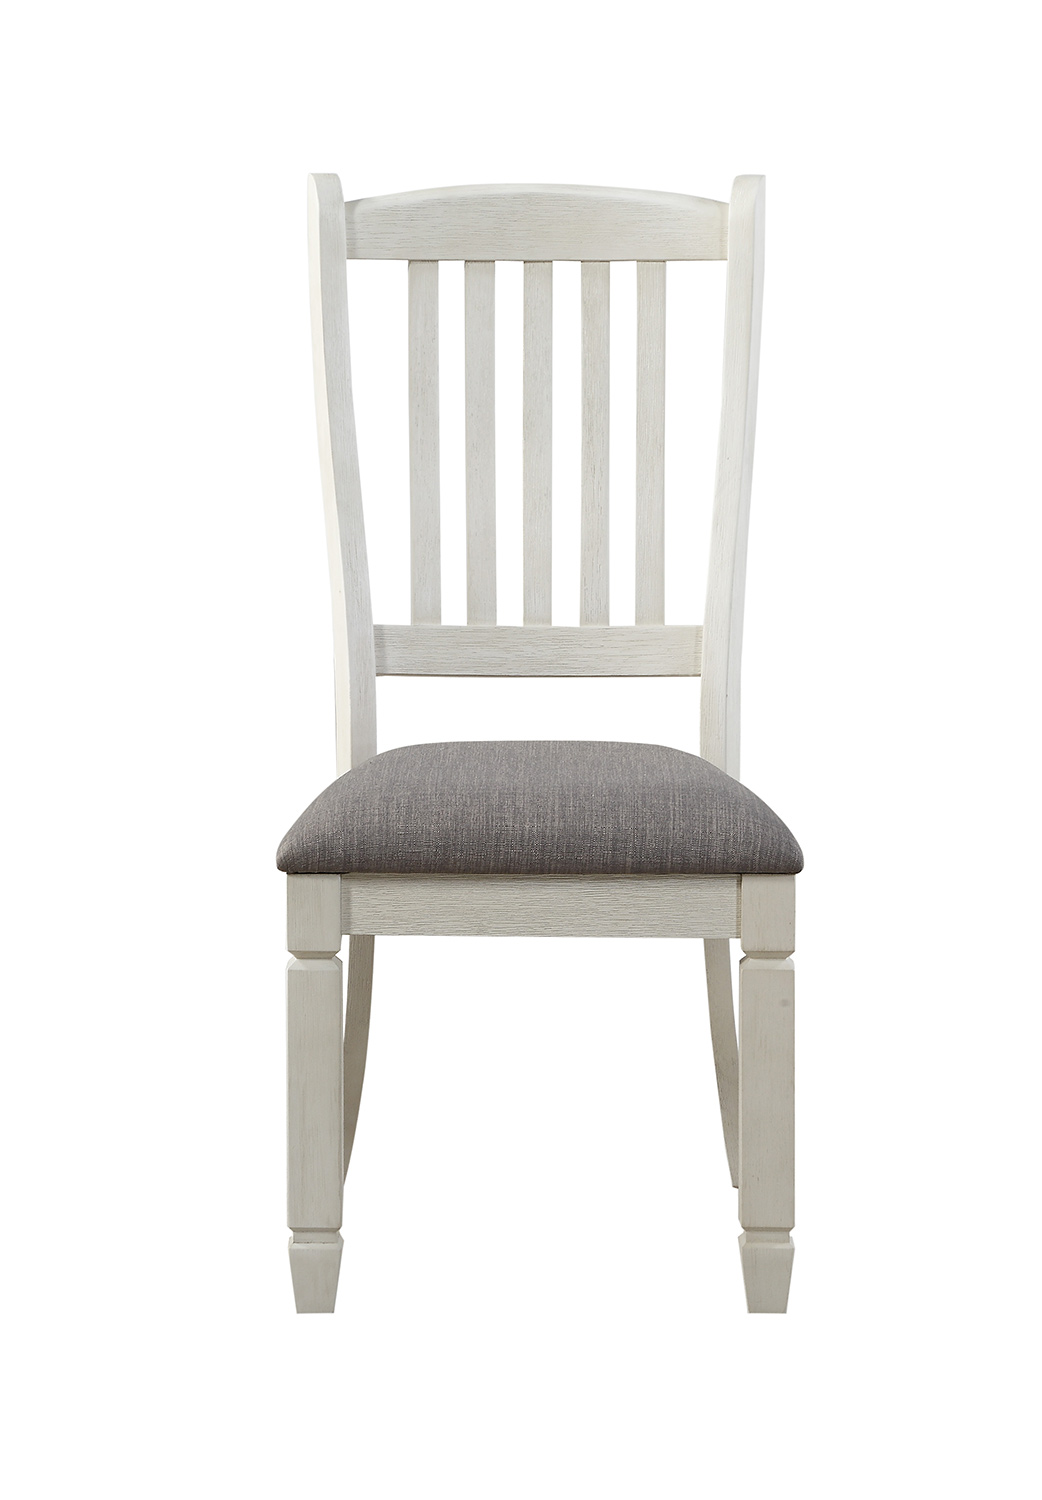 Homelegance Willow Bend Side Chair - Antique White